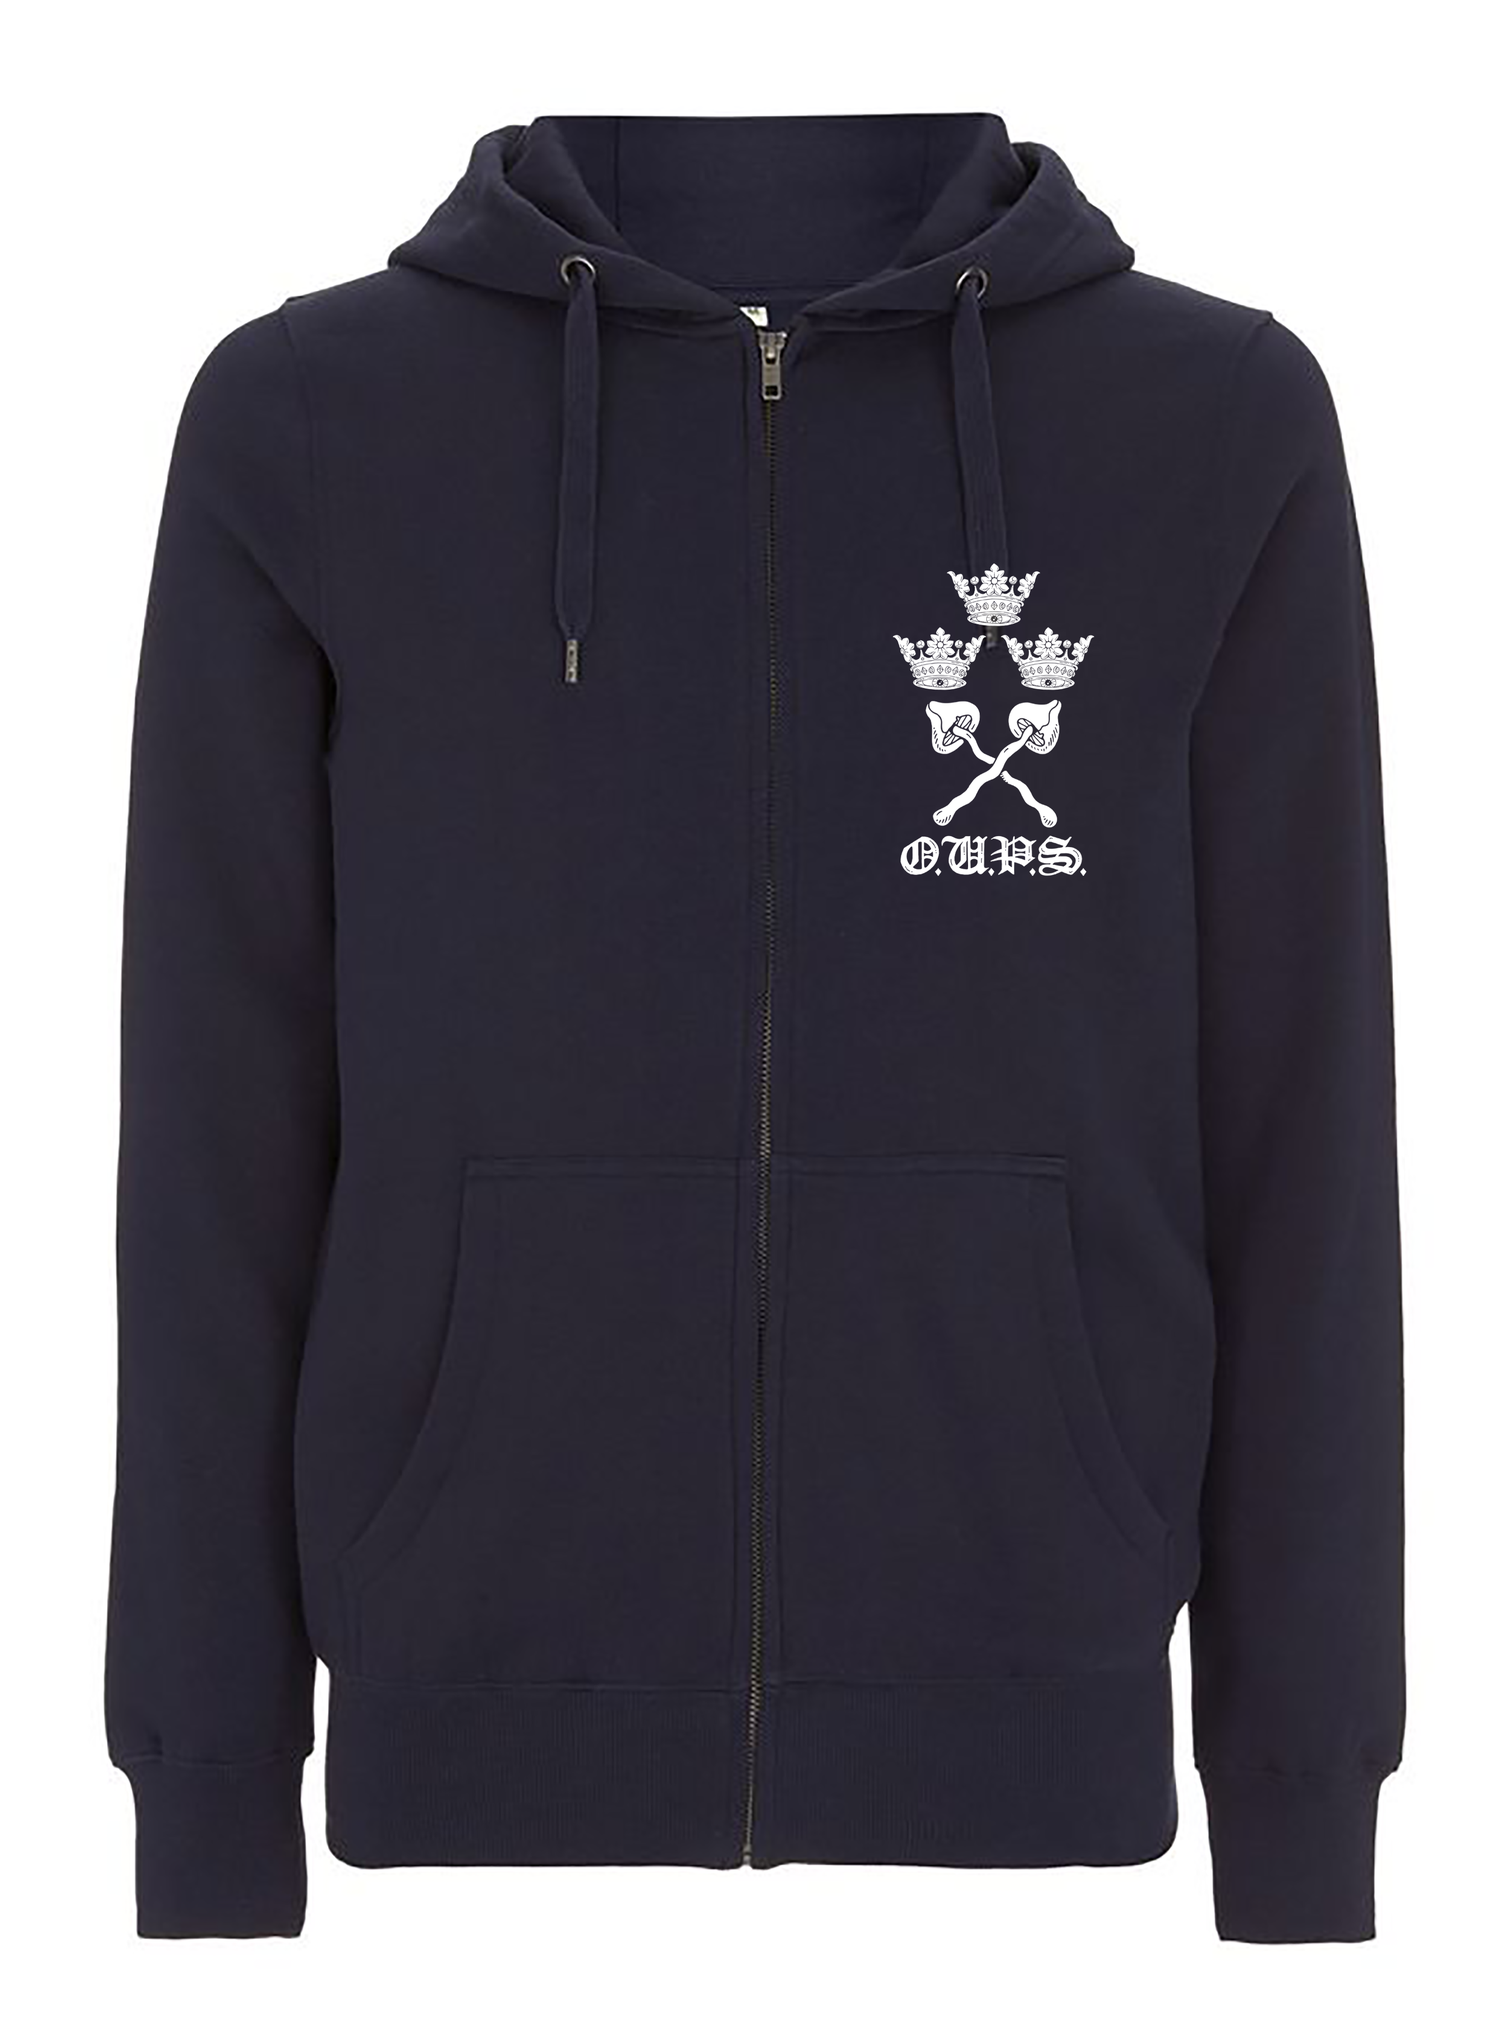 Image of Pre-order varsity unisex zip-up hoodie navy (certified organic cotton by Earth Positive)